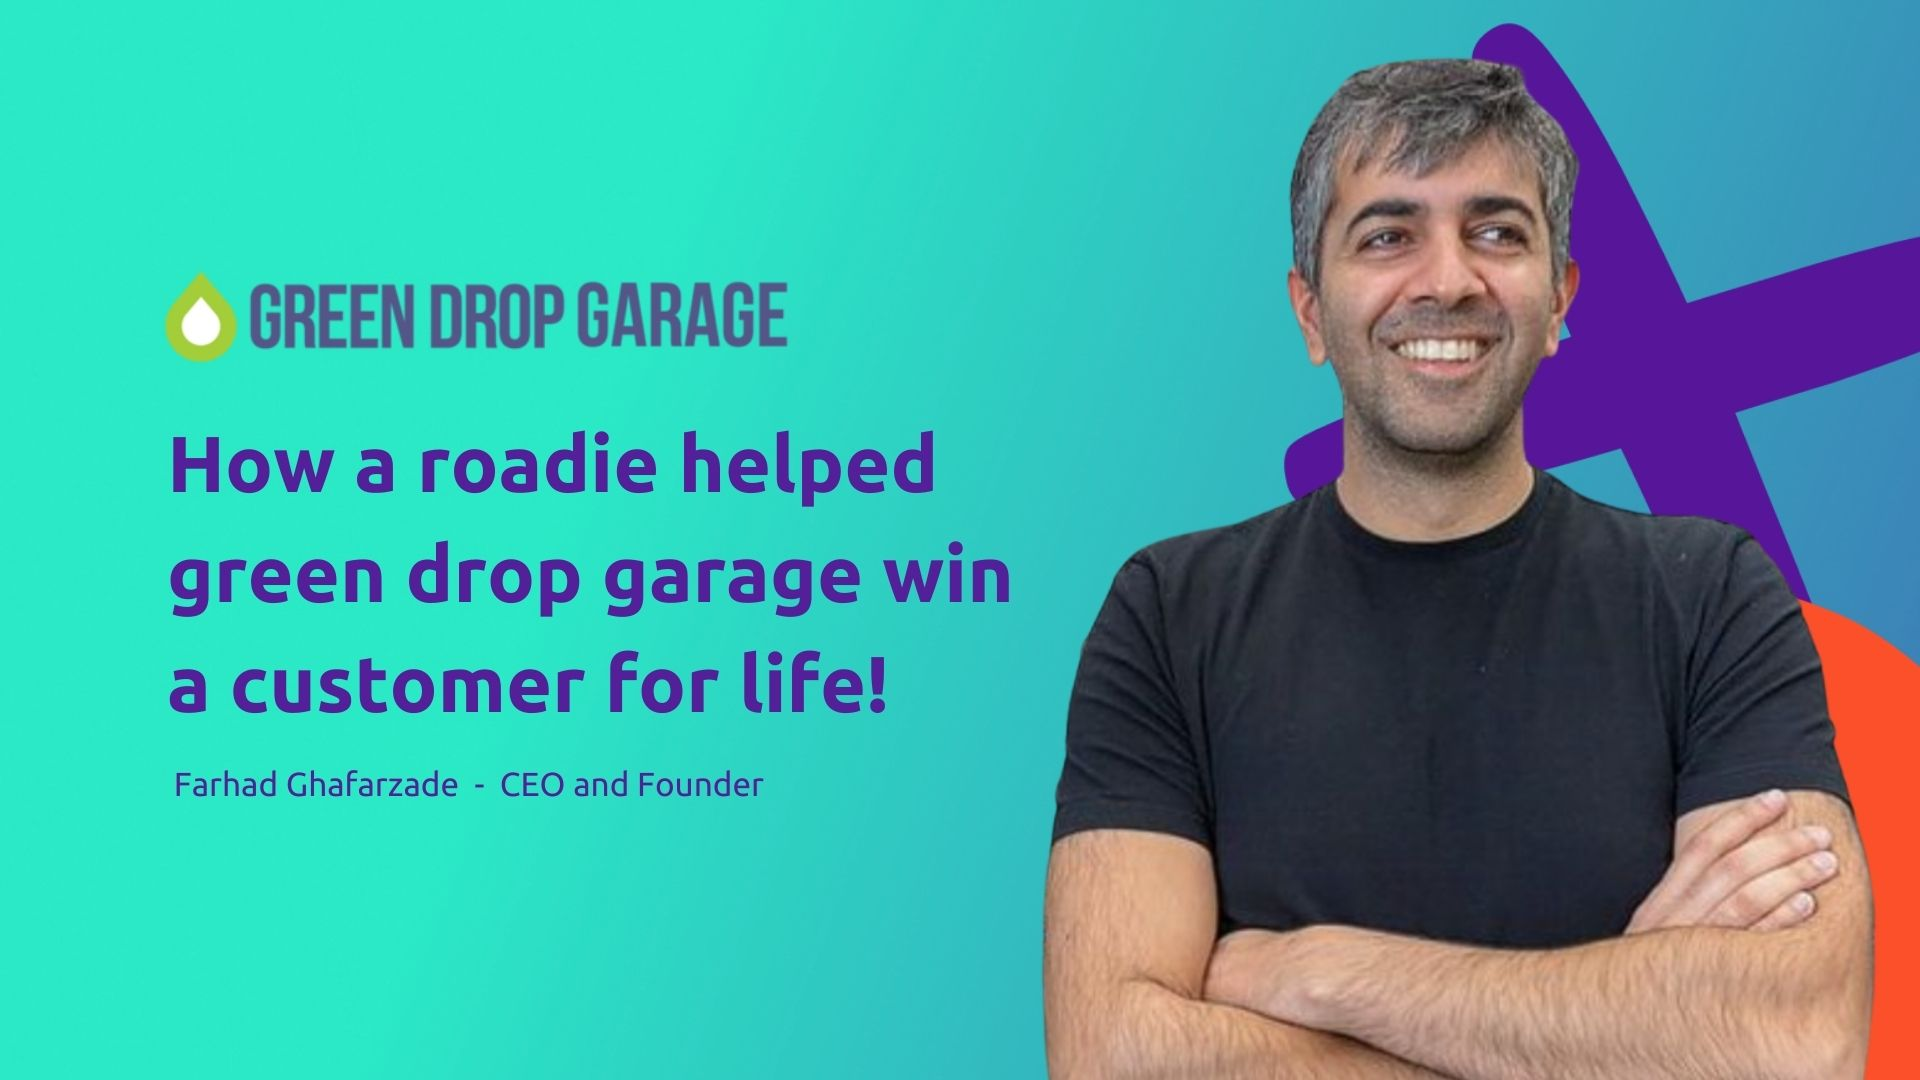 how a roadie helped green drop garage win a customer for life